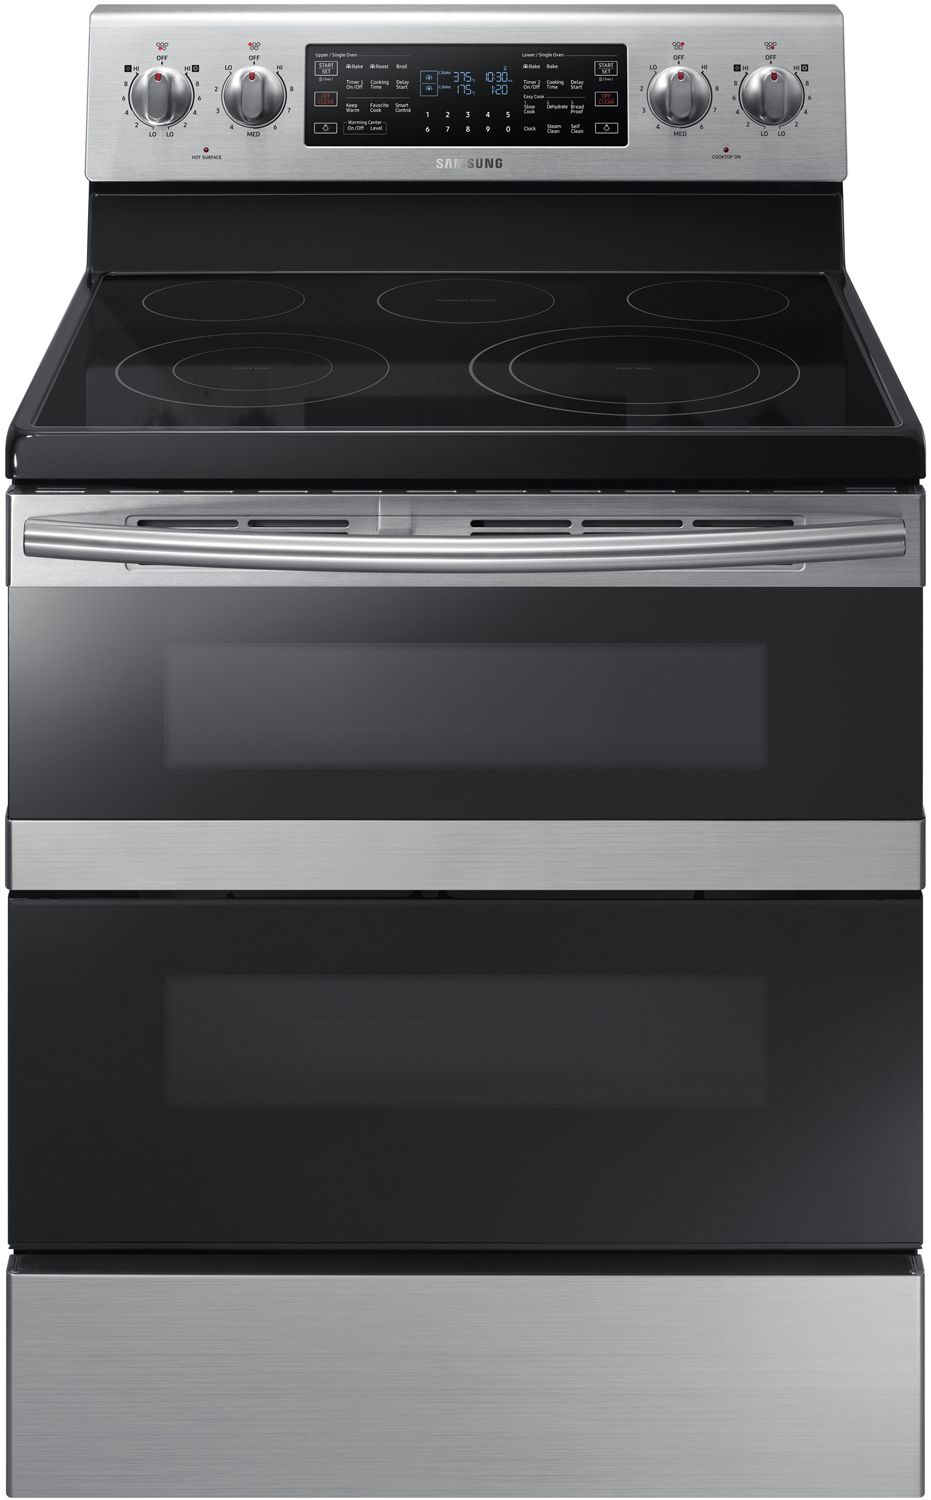 Samsung Stainless Steel Electric Range Ne59m6850ss